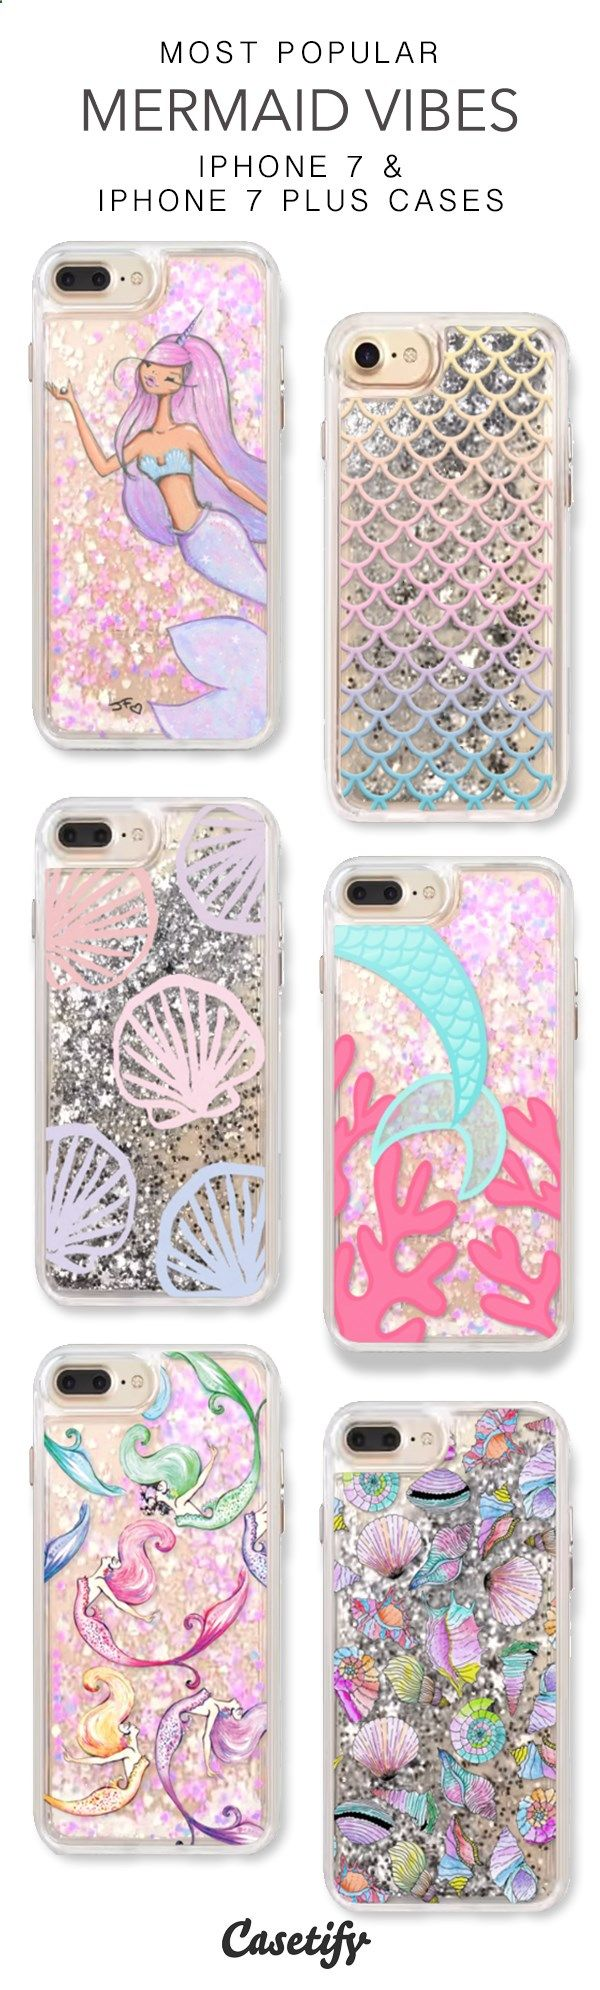 Most Popular Mermaid Vibes iPhone 7 Cases & iPhone 7 Plus Cases. More glitter iPhone case here > www.casetify.com/...